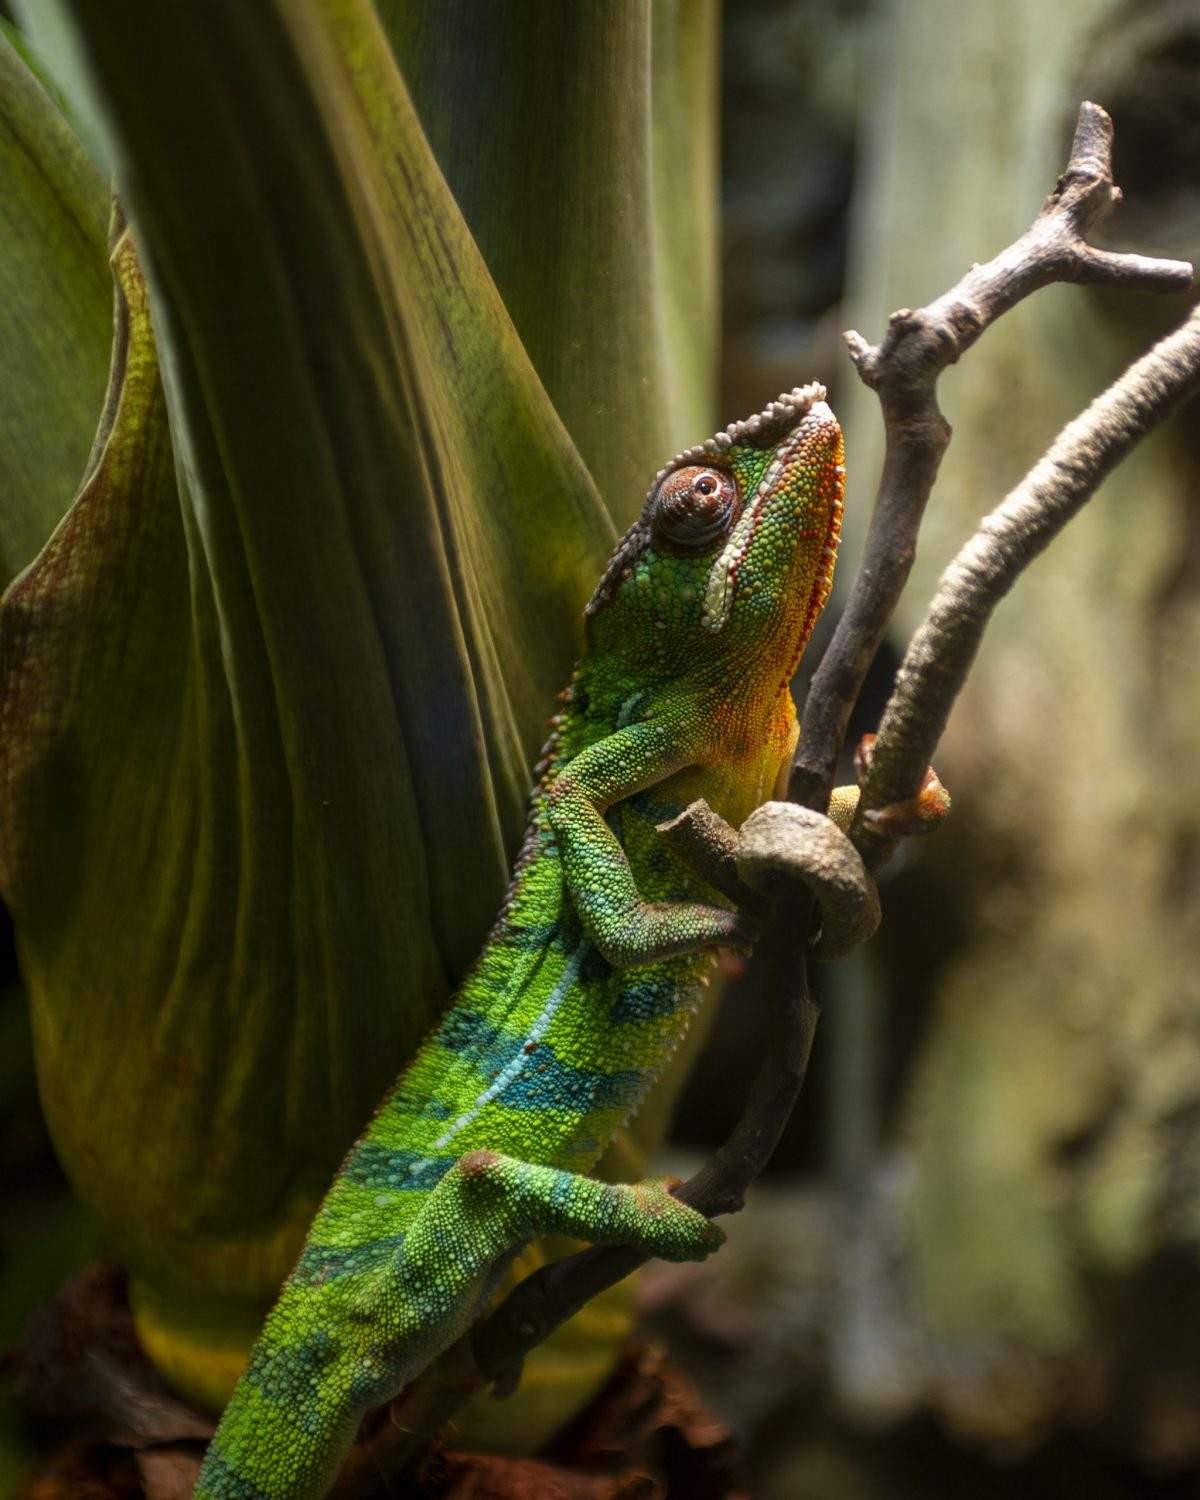 Panther Chameleon crawling up a branch